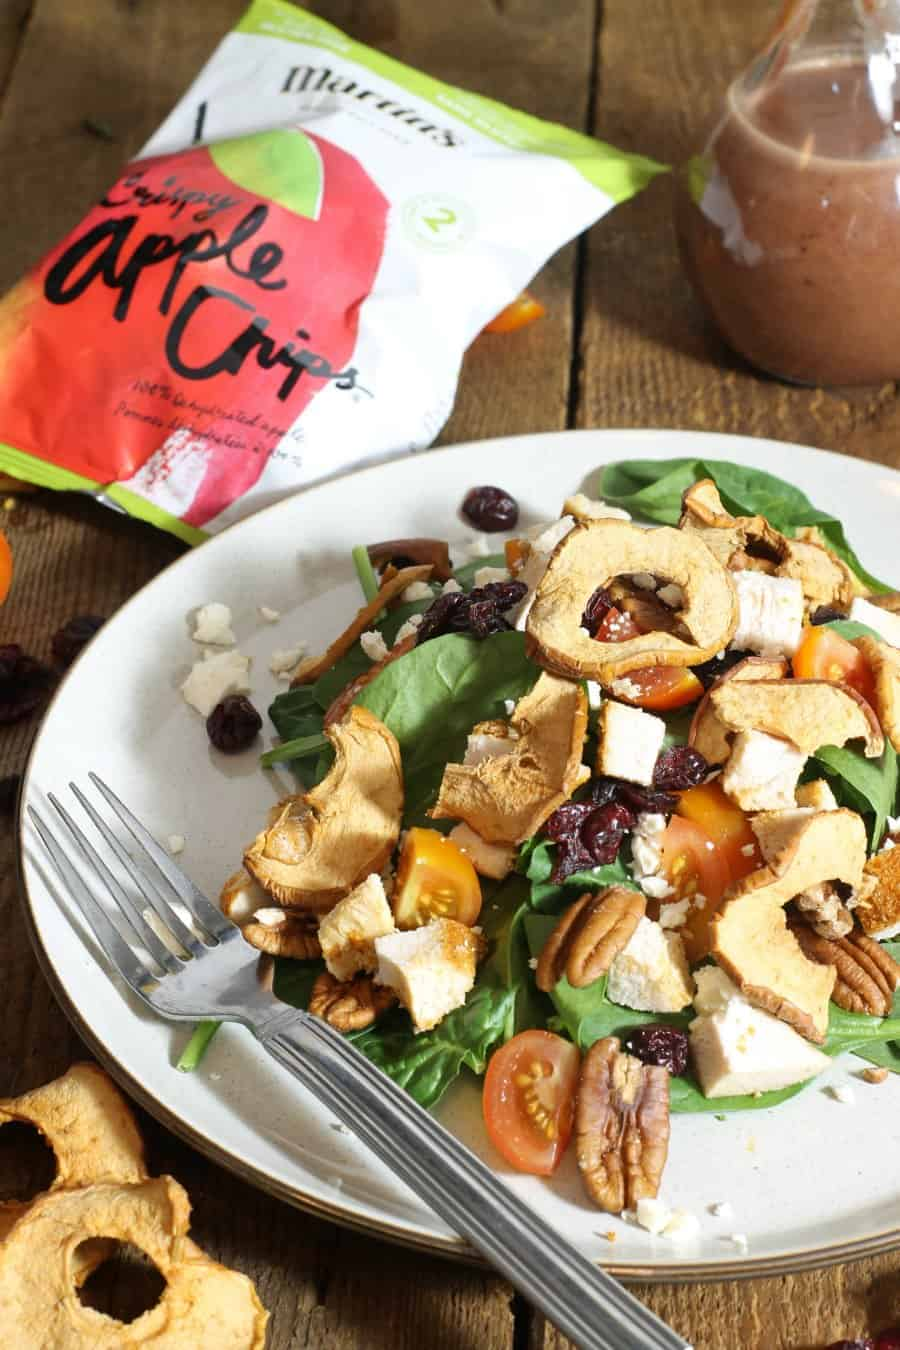 A simple chicken spinach salad with a crispy twist! Martin's Crispy Apple Slices are mixed with baked chicken, pecans, cherry tomatoes, and feta, to create the perfect back-to-school/work salad meal.